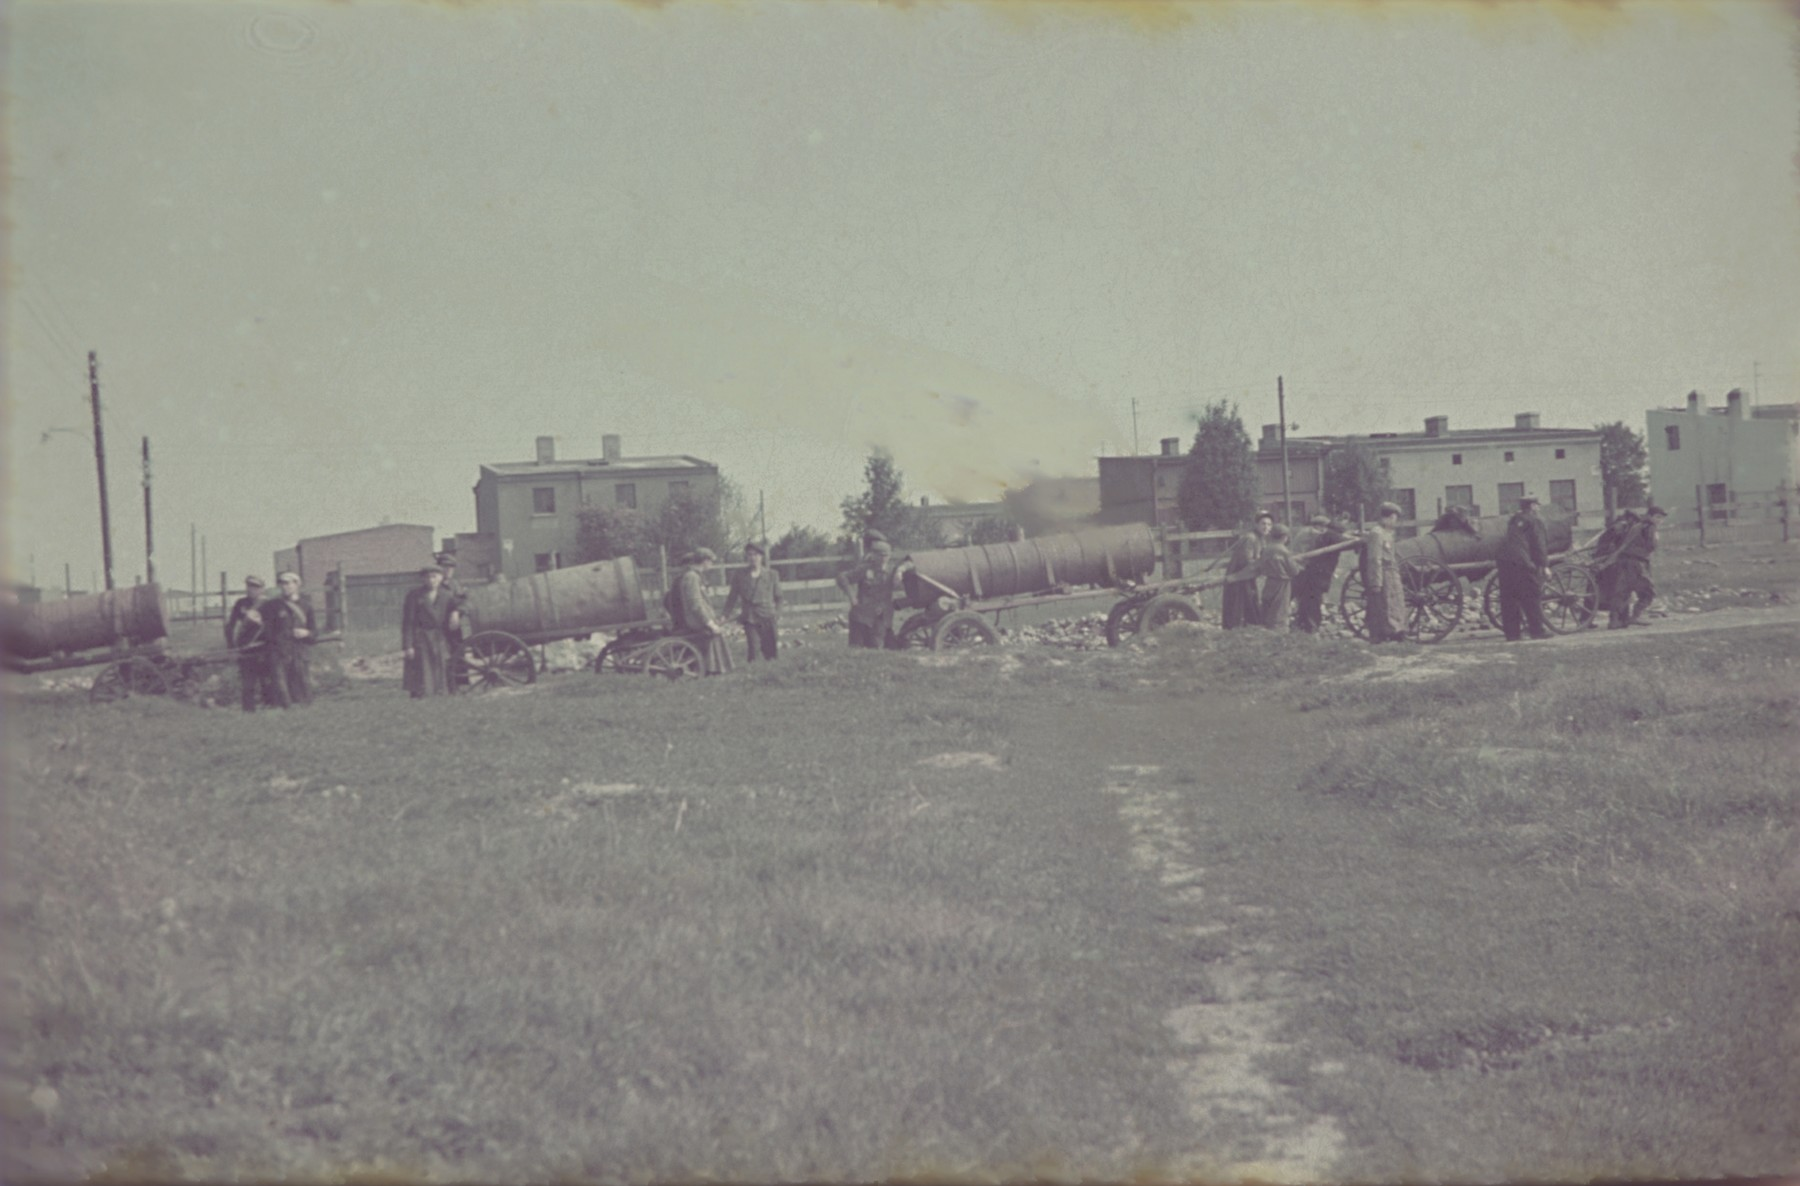 Fecalists haul sewage carts through a field in the Lodz ghetto.